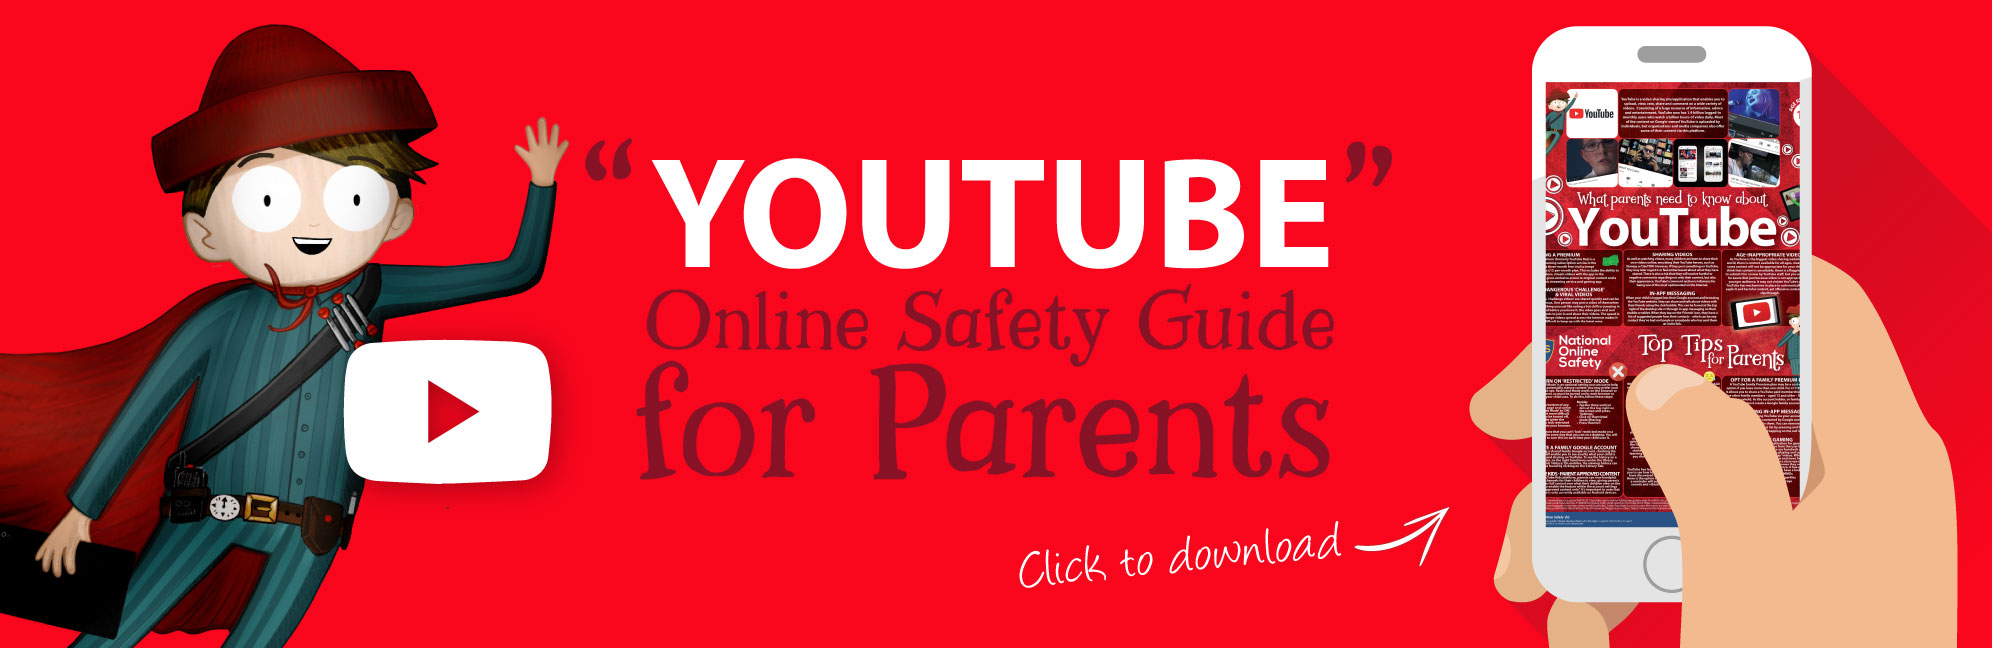 Youtube-Online-Safety-Parents-Guide-Web-Image-121118-V1